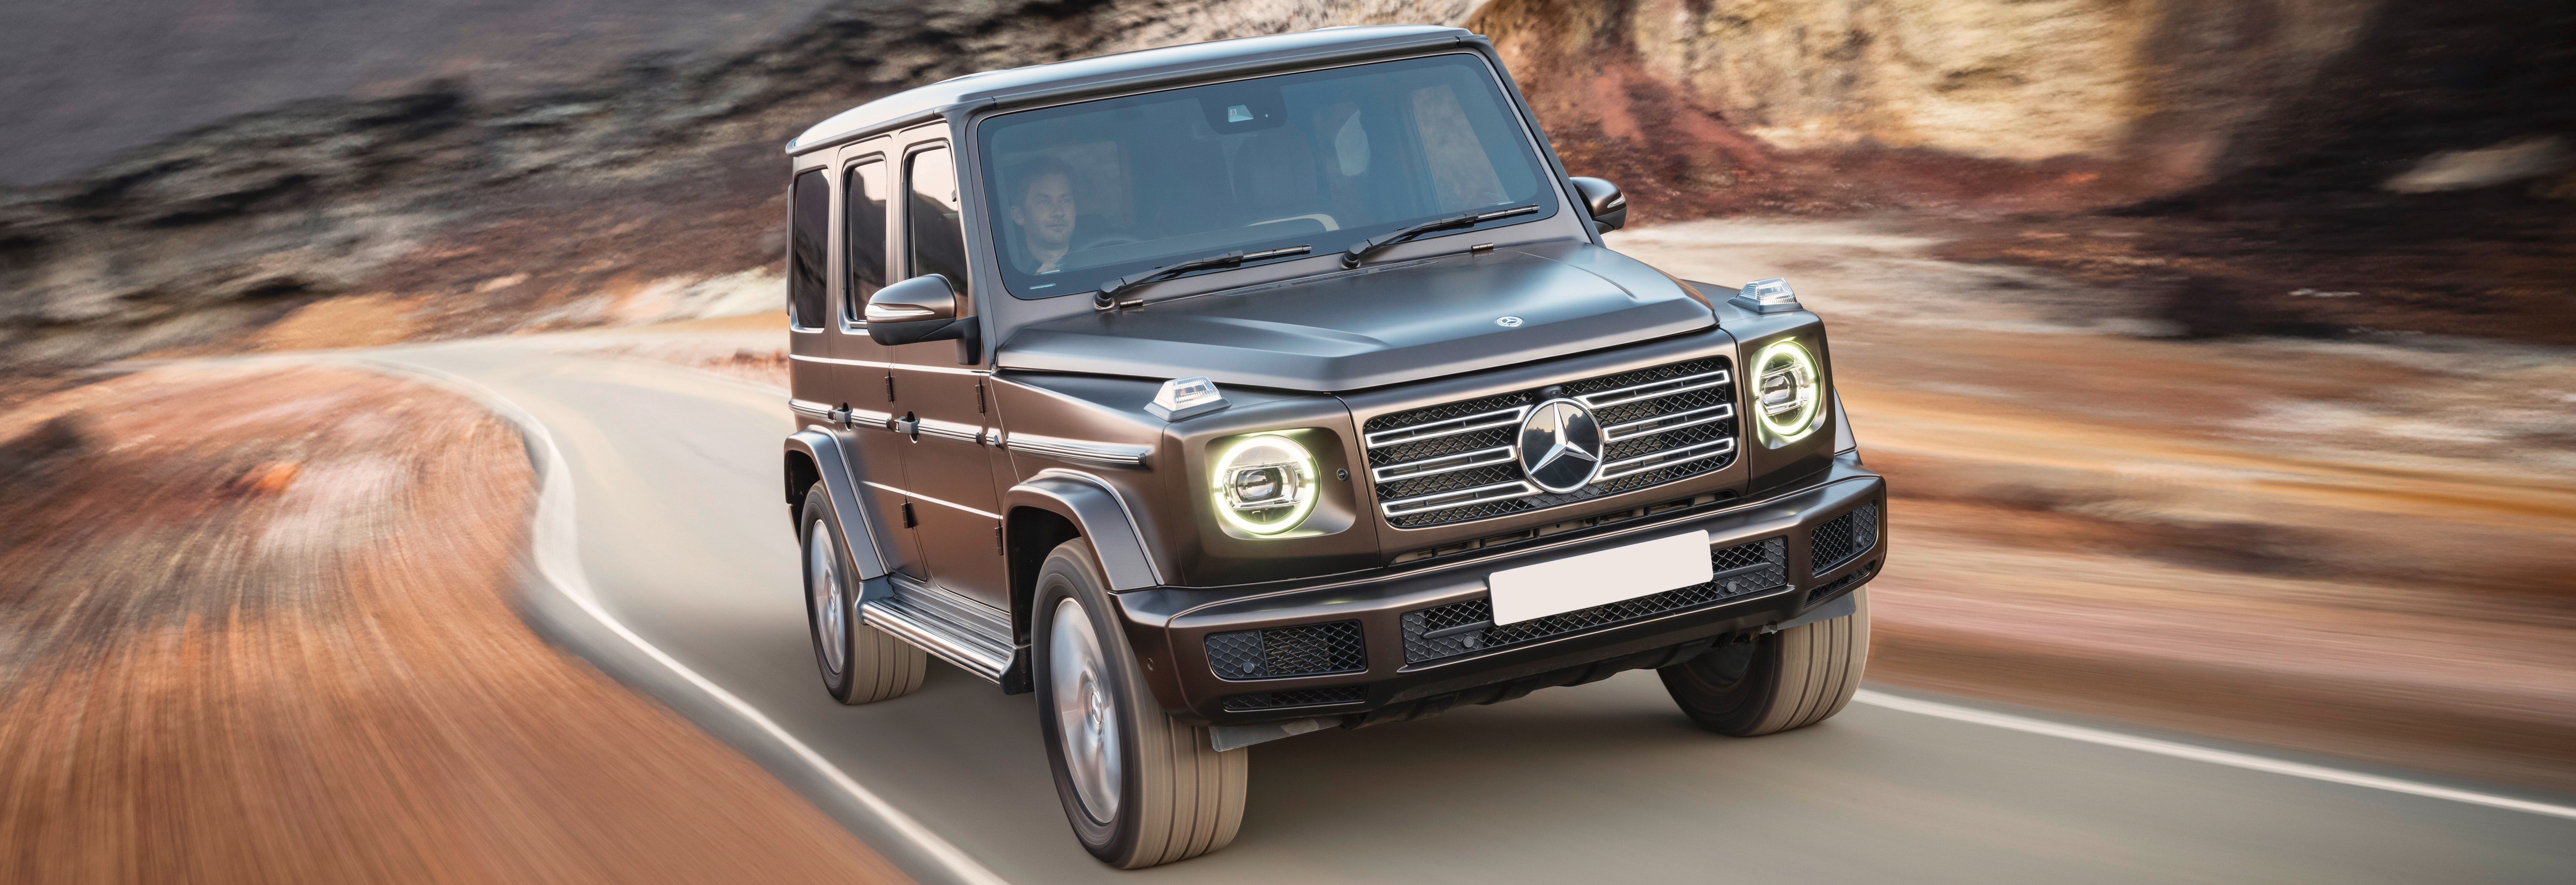 2018 mercedes g class brown driving front